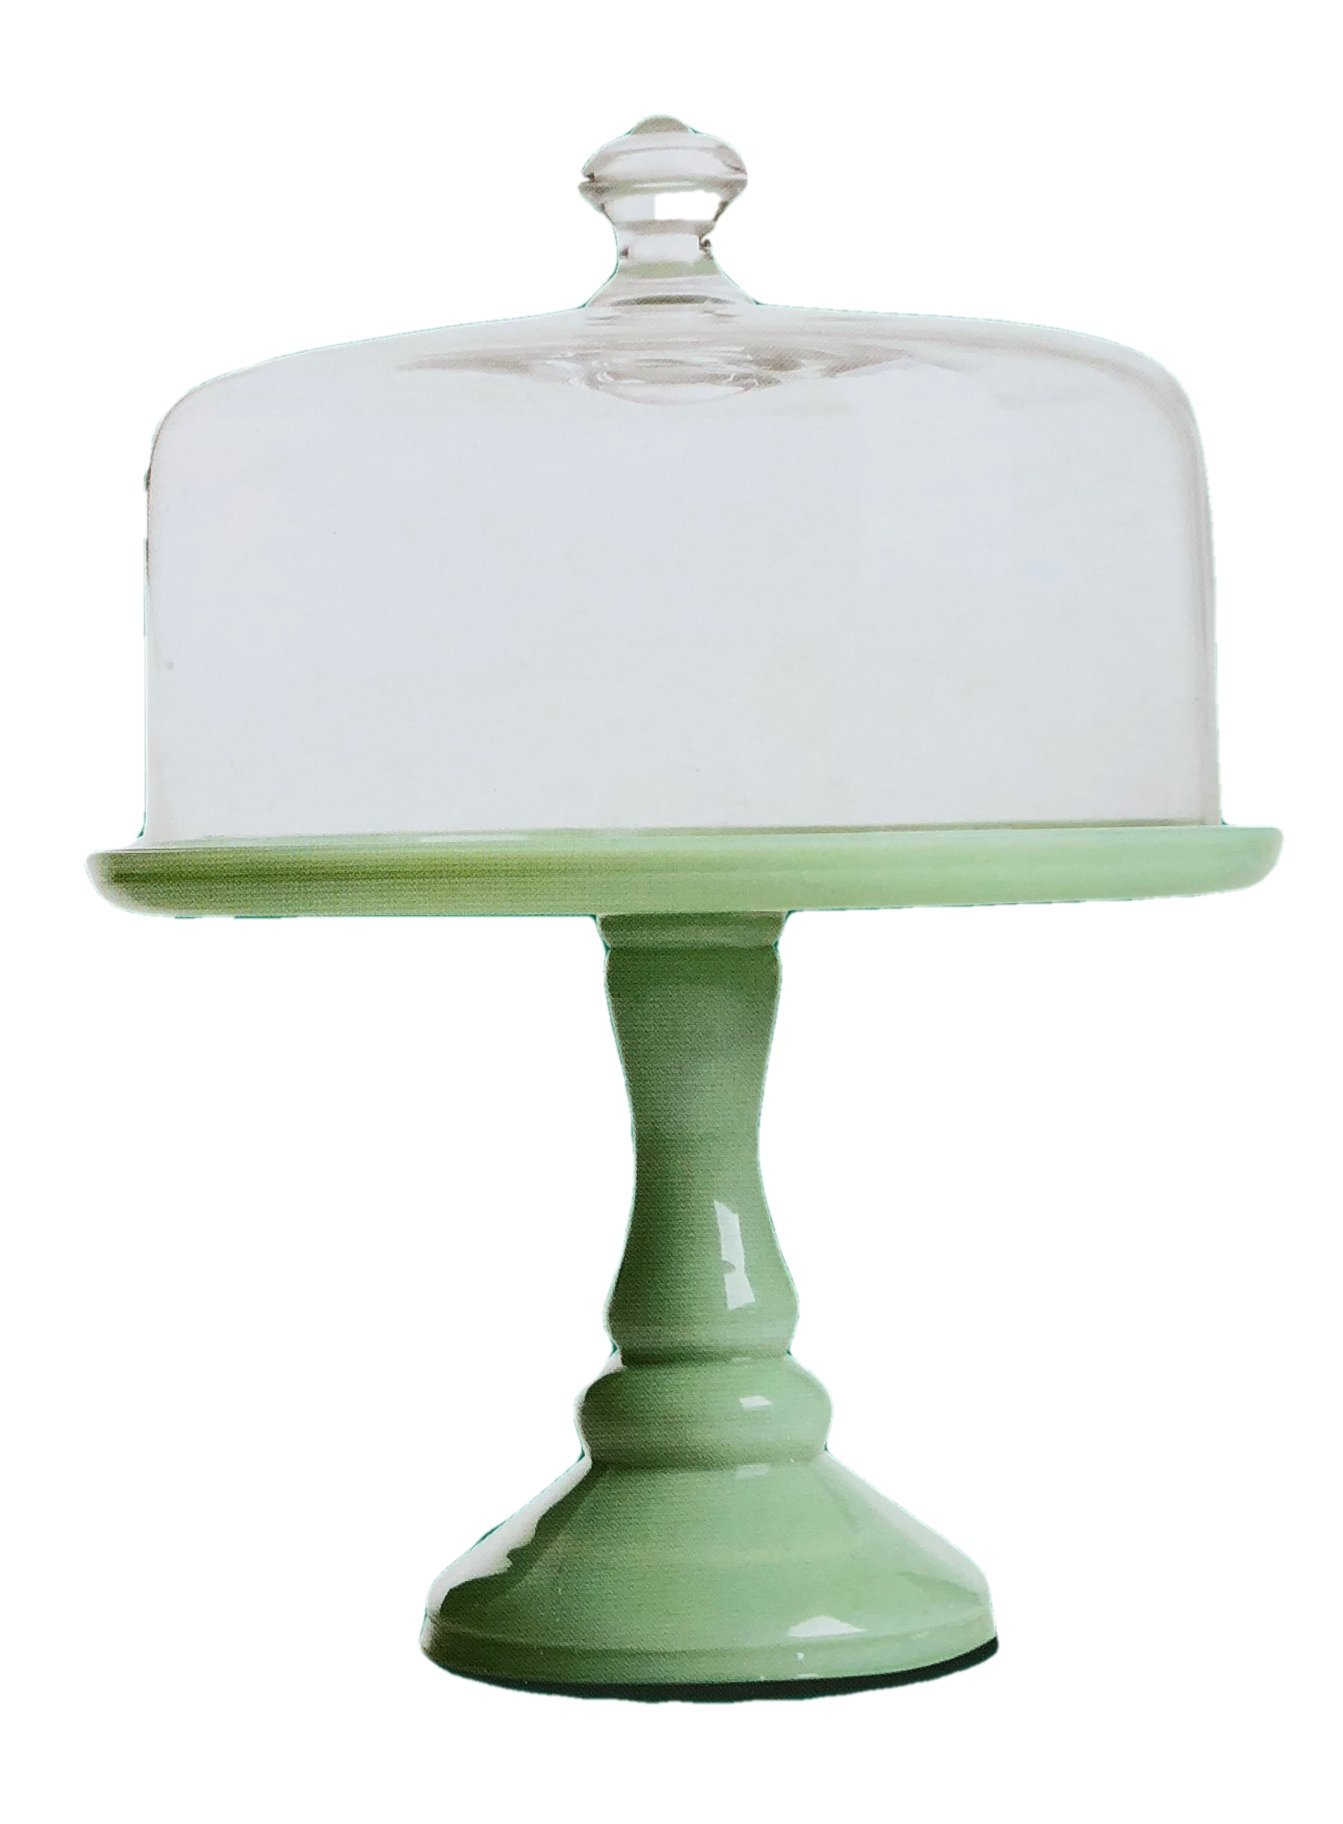 The Pioneer Woman Timeless Beauty 10 inch Pedestal Cake Stand with Glass Cover